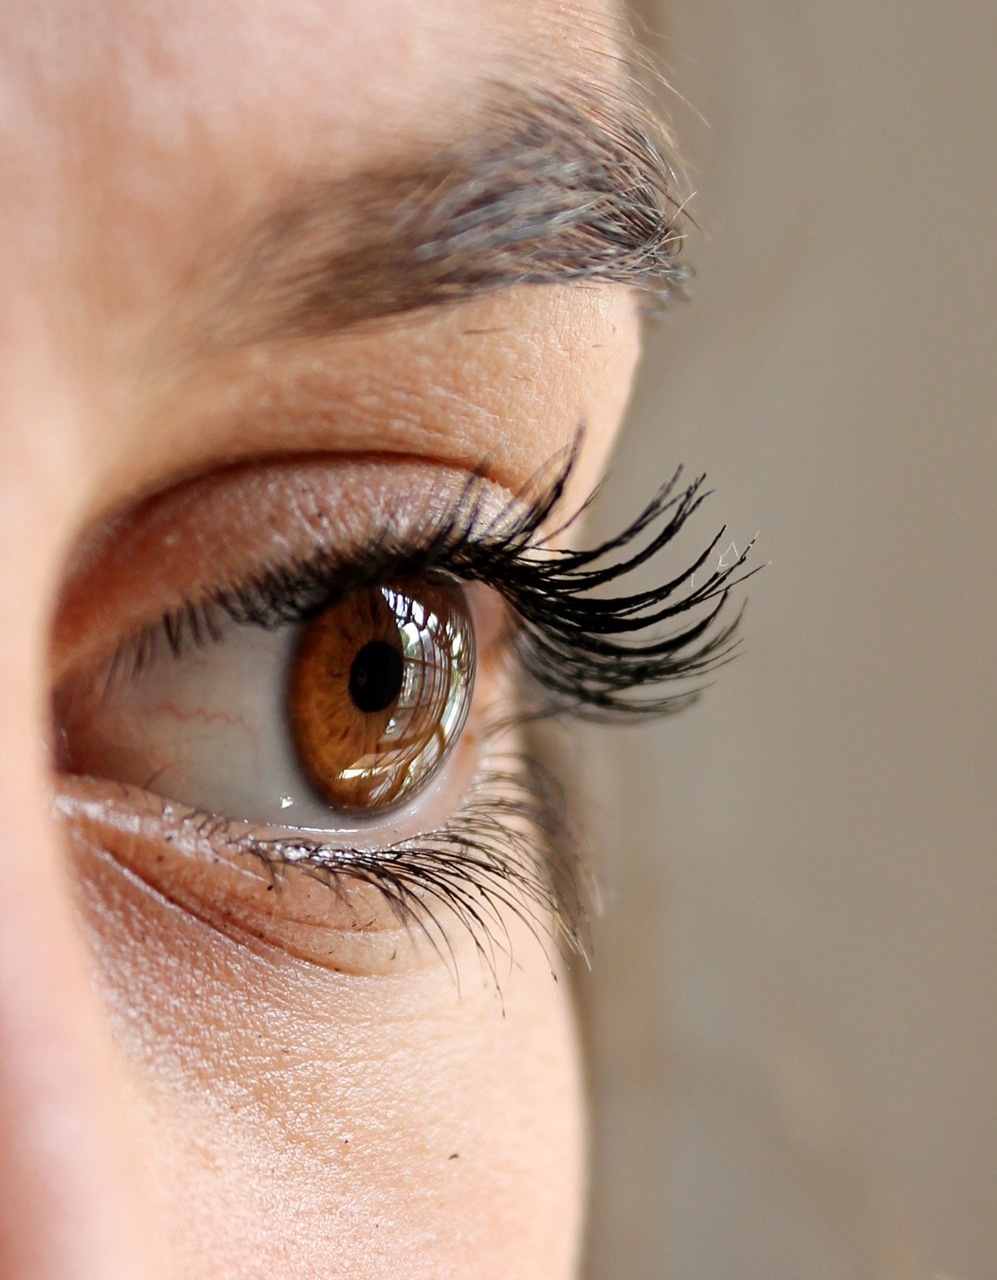 Approximately 7.7 million people age 40 and older have diabetic retinopathy.